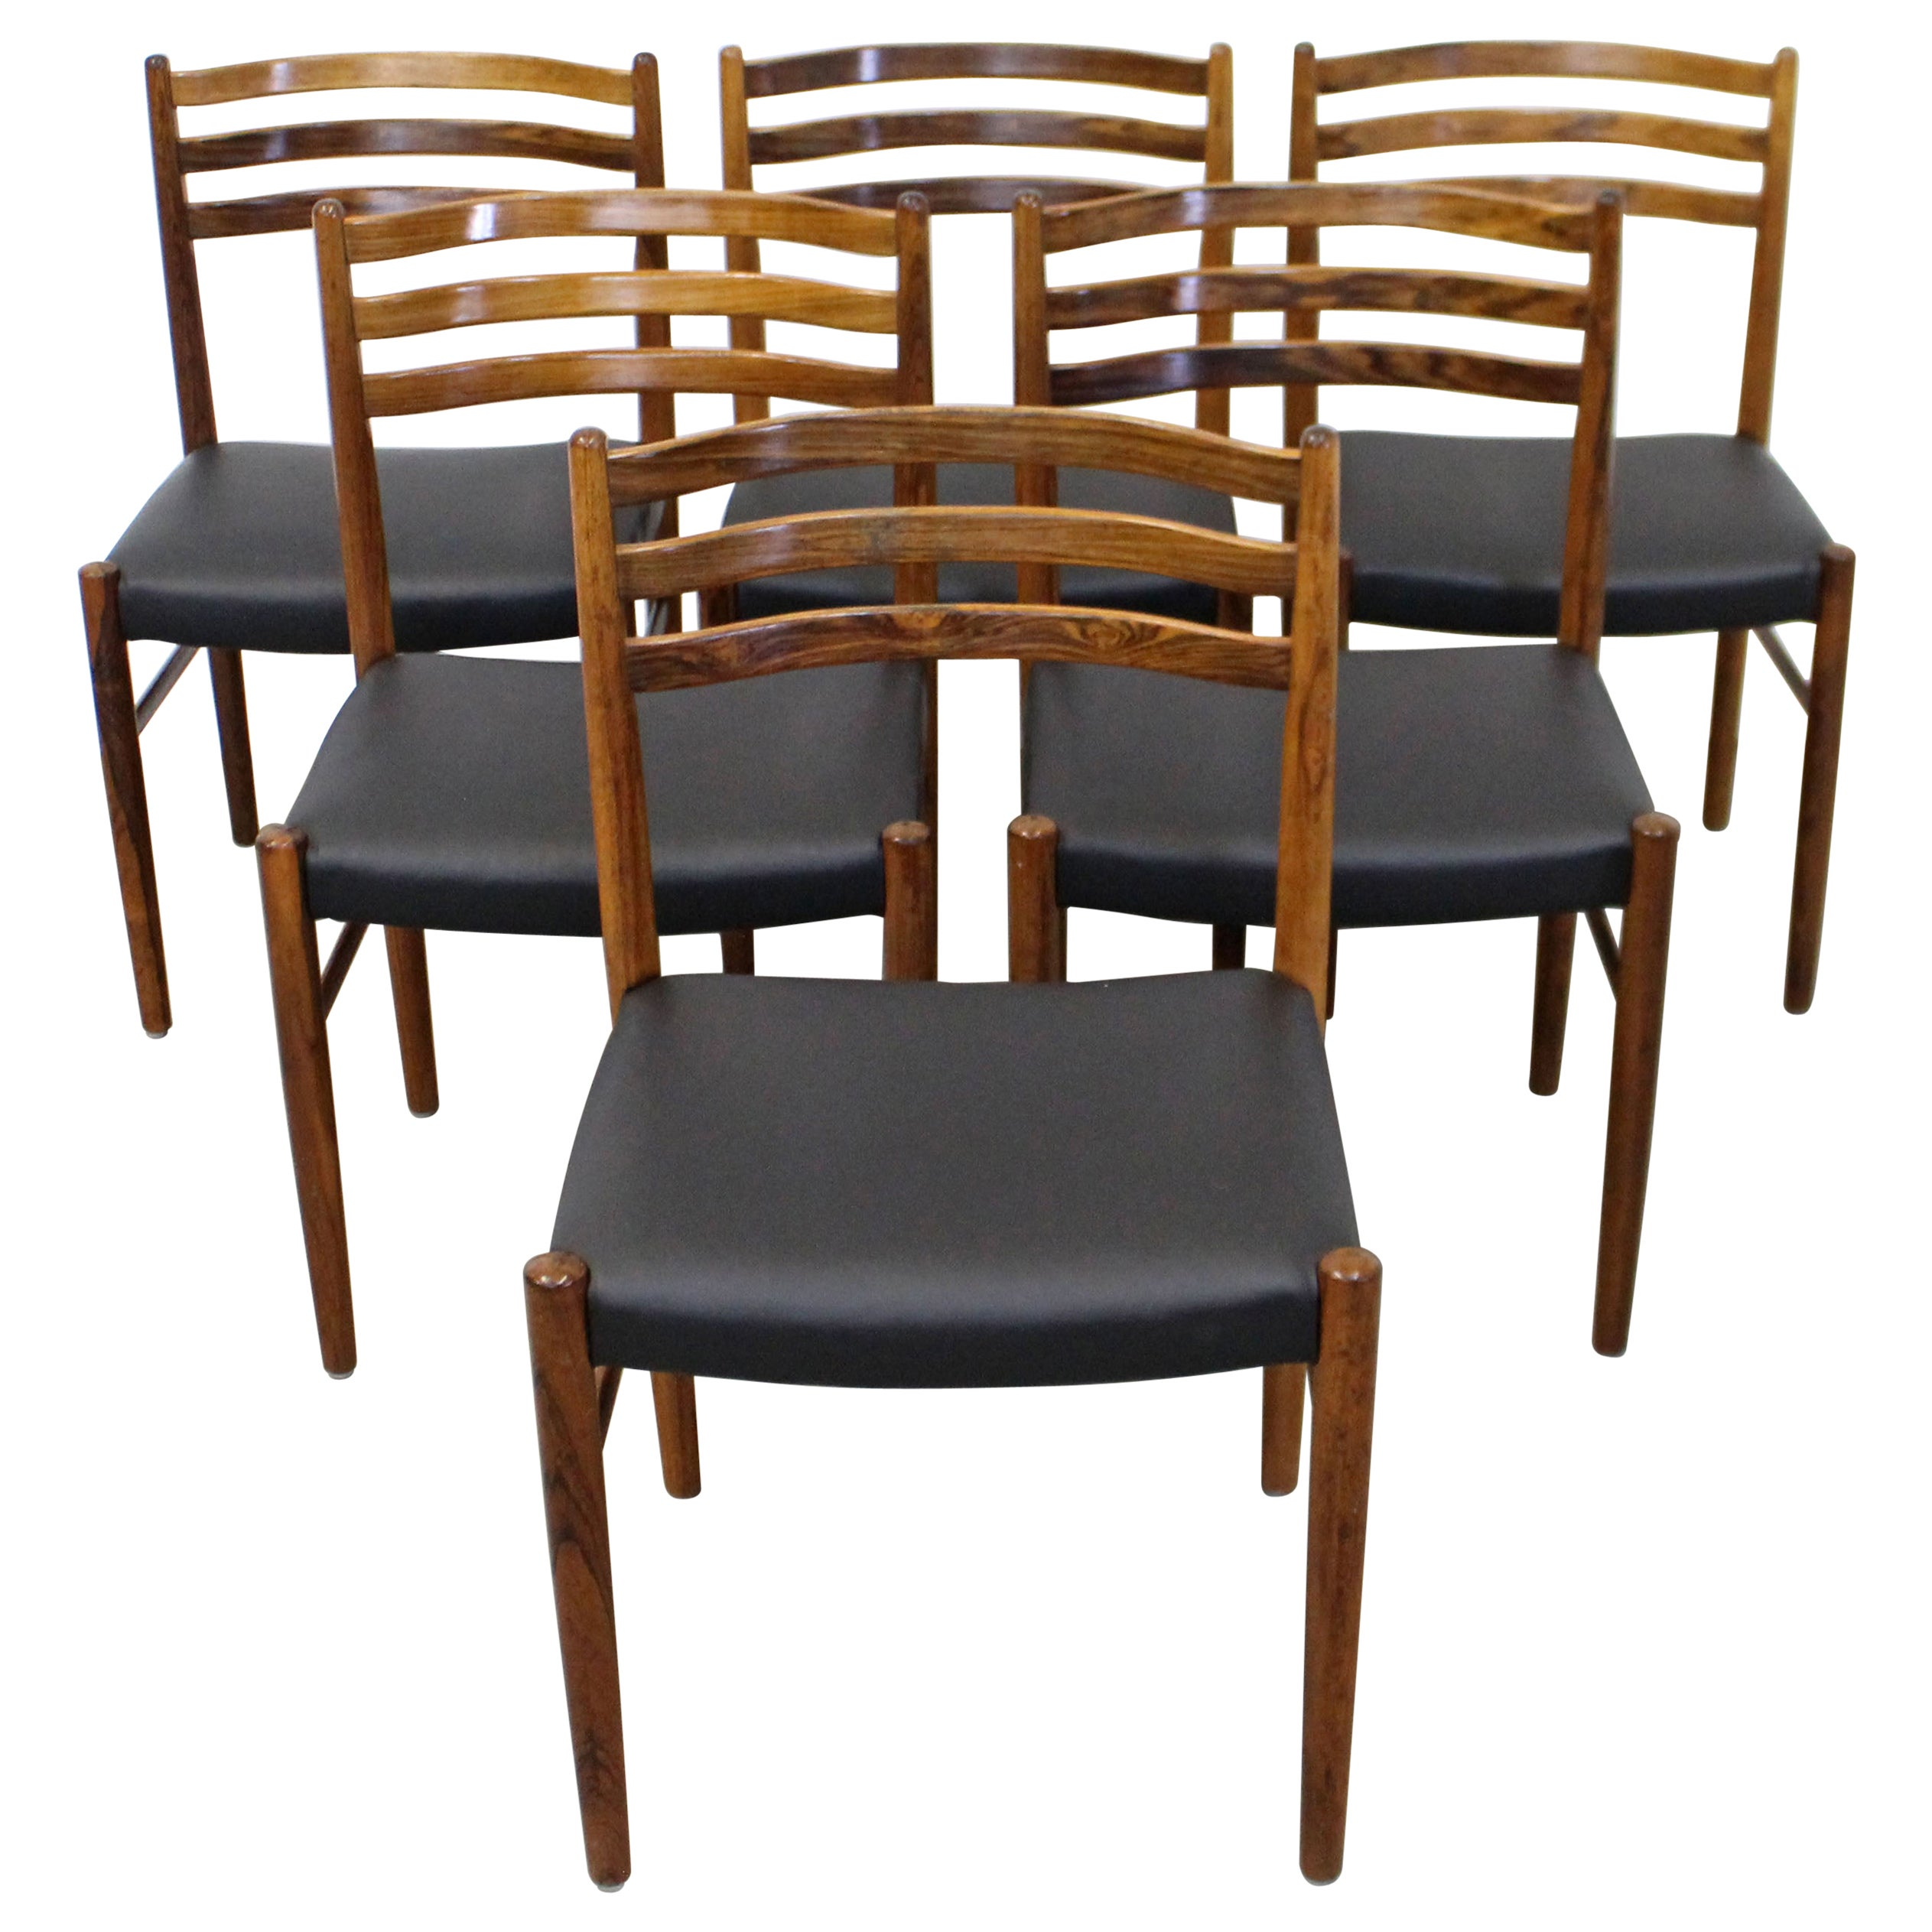 Set of 6 Mid-Century Modern Rosewood and Leather Dining Chairs